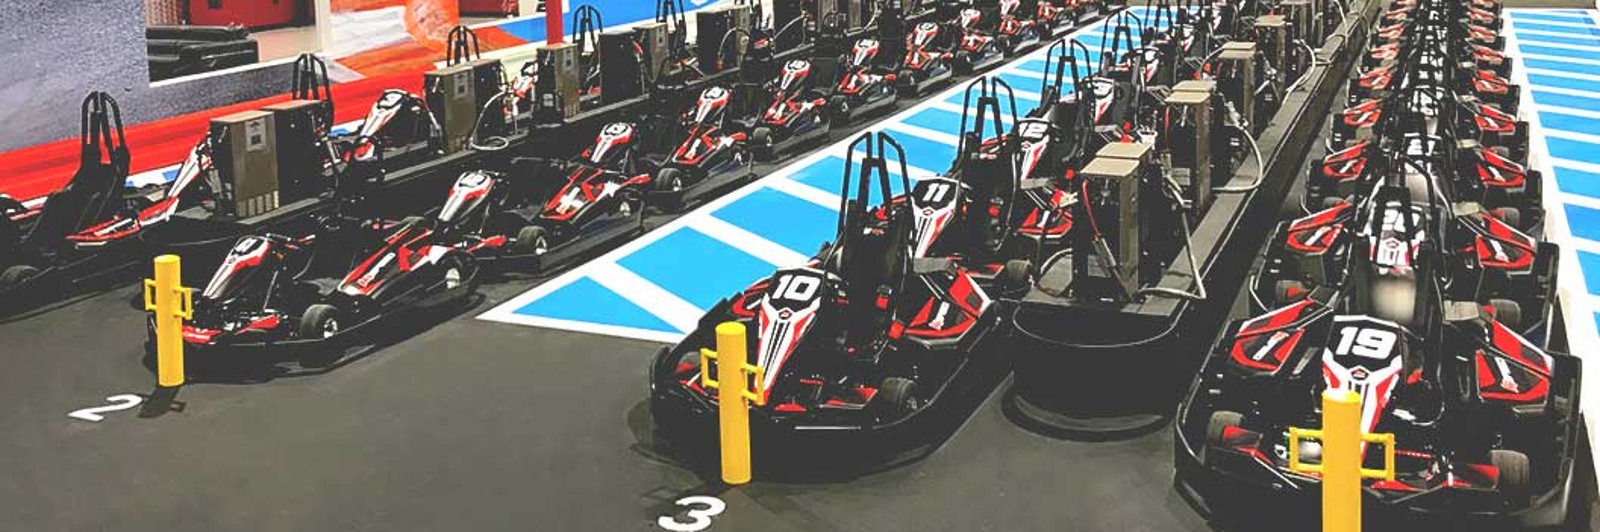 K1 Speed Indoor Go Kart Center At The Outlet Mall 66 Discovering